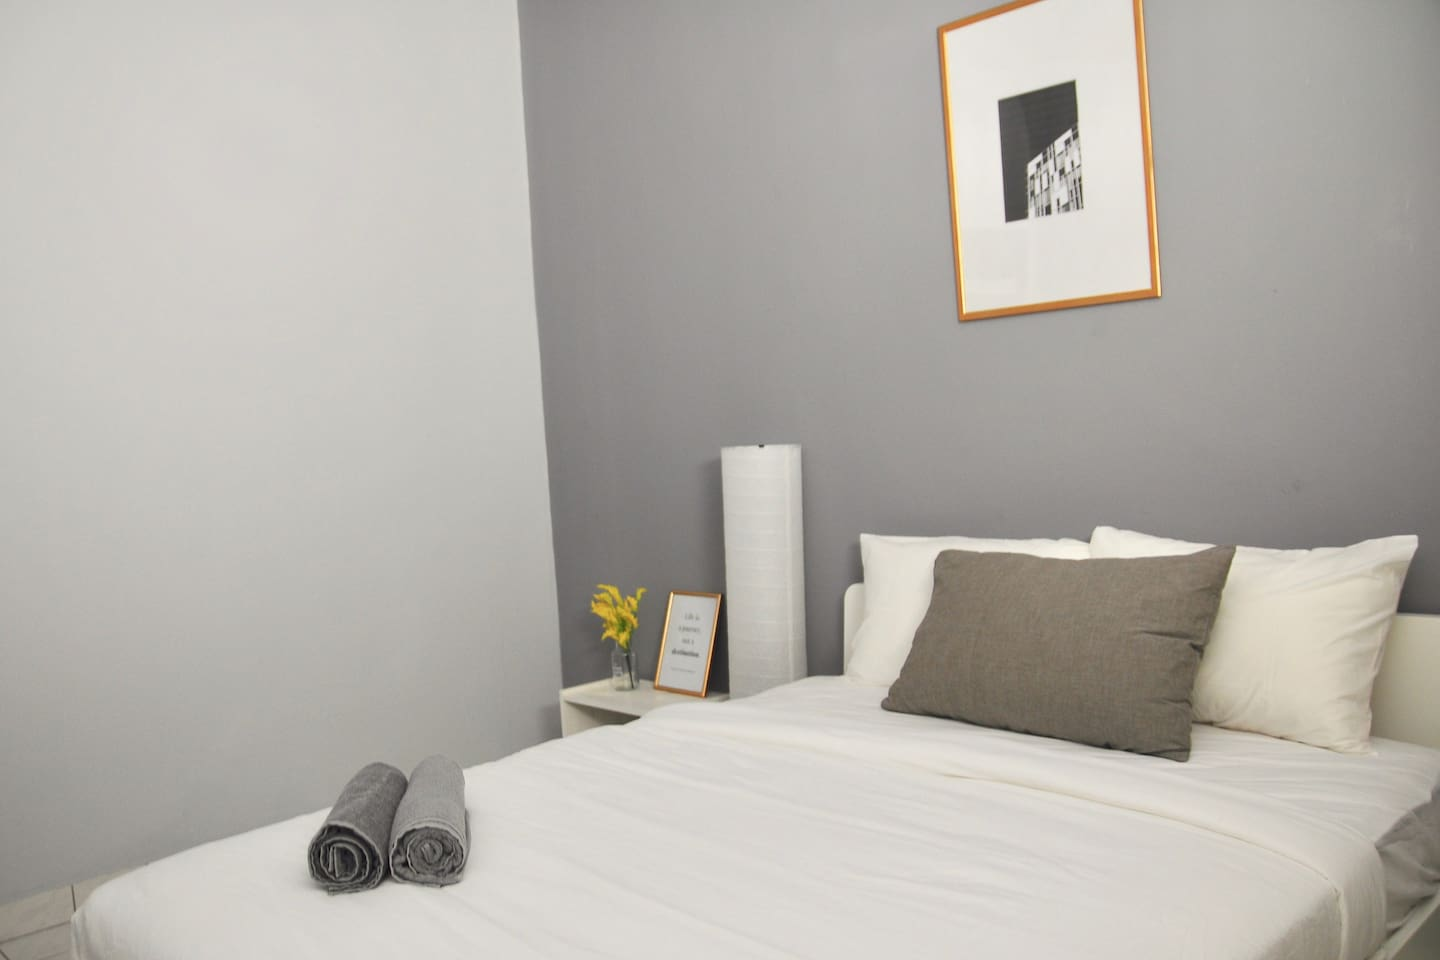 1st Floor Deluxe Room with 1 Queen Bed, TV with 100+ Channels, Attached Private Bathroom and 1 Carpark Space